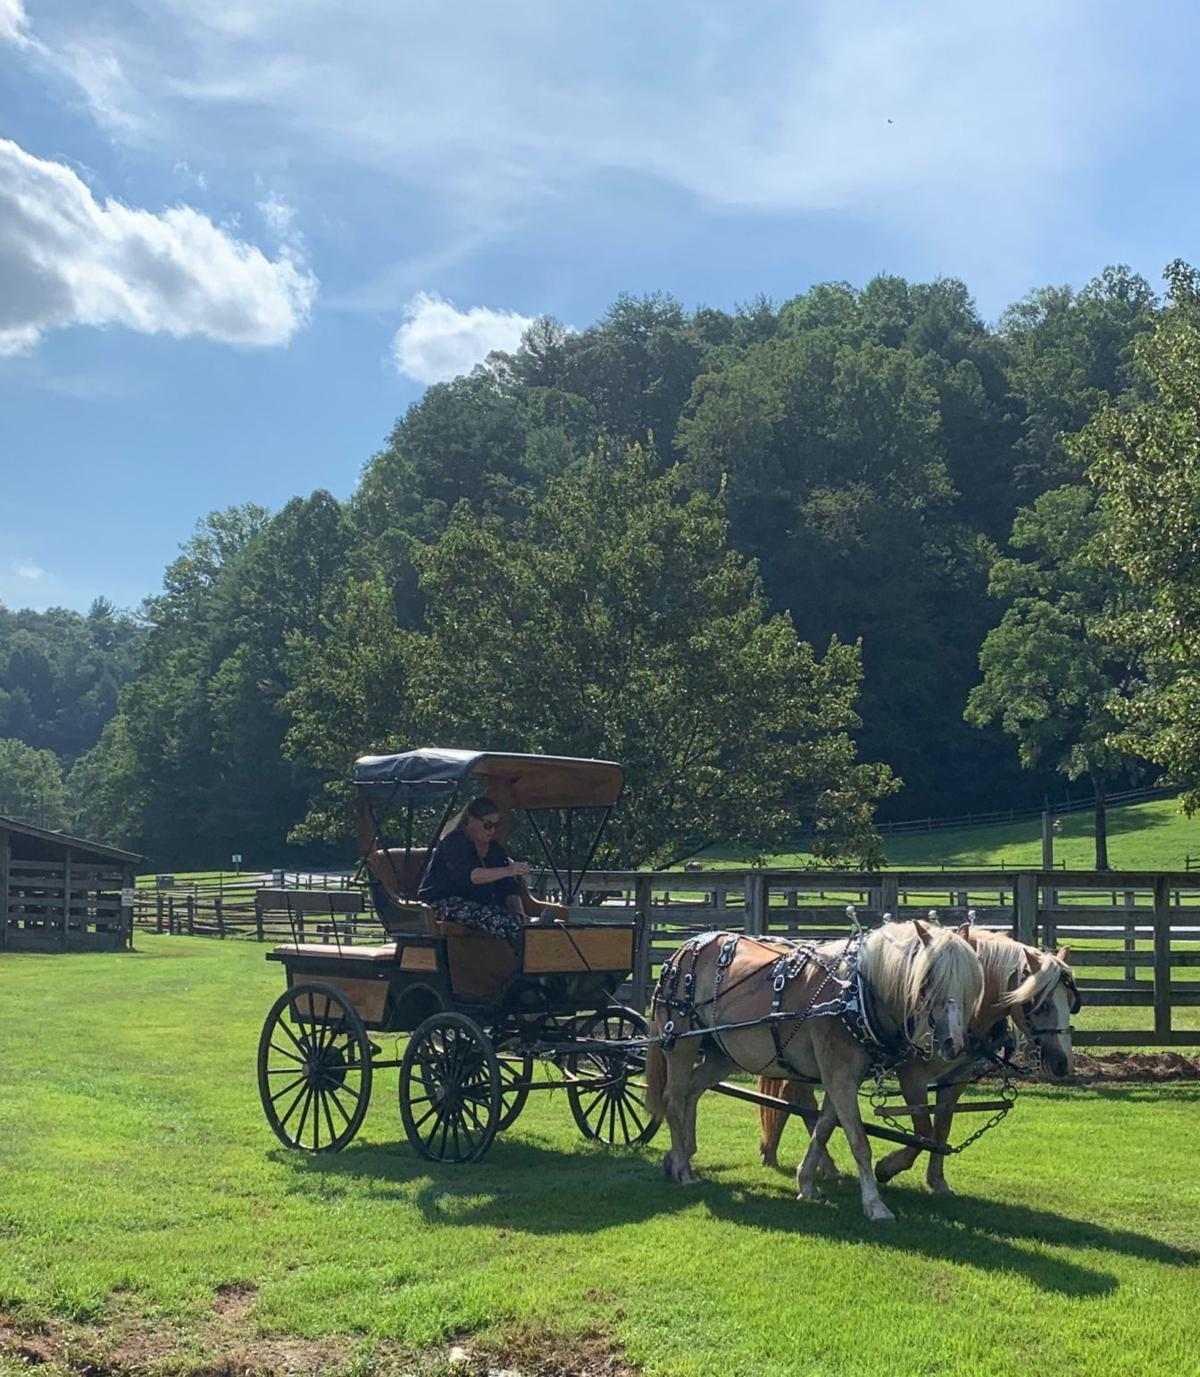 Horse drawn carriage rides are offered at the annual Daniel Boone Festival in Ferguson.